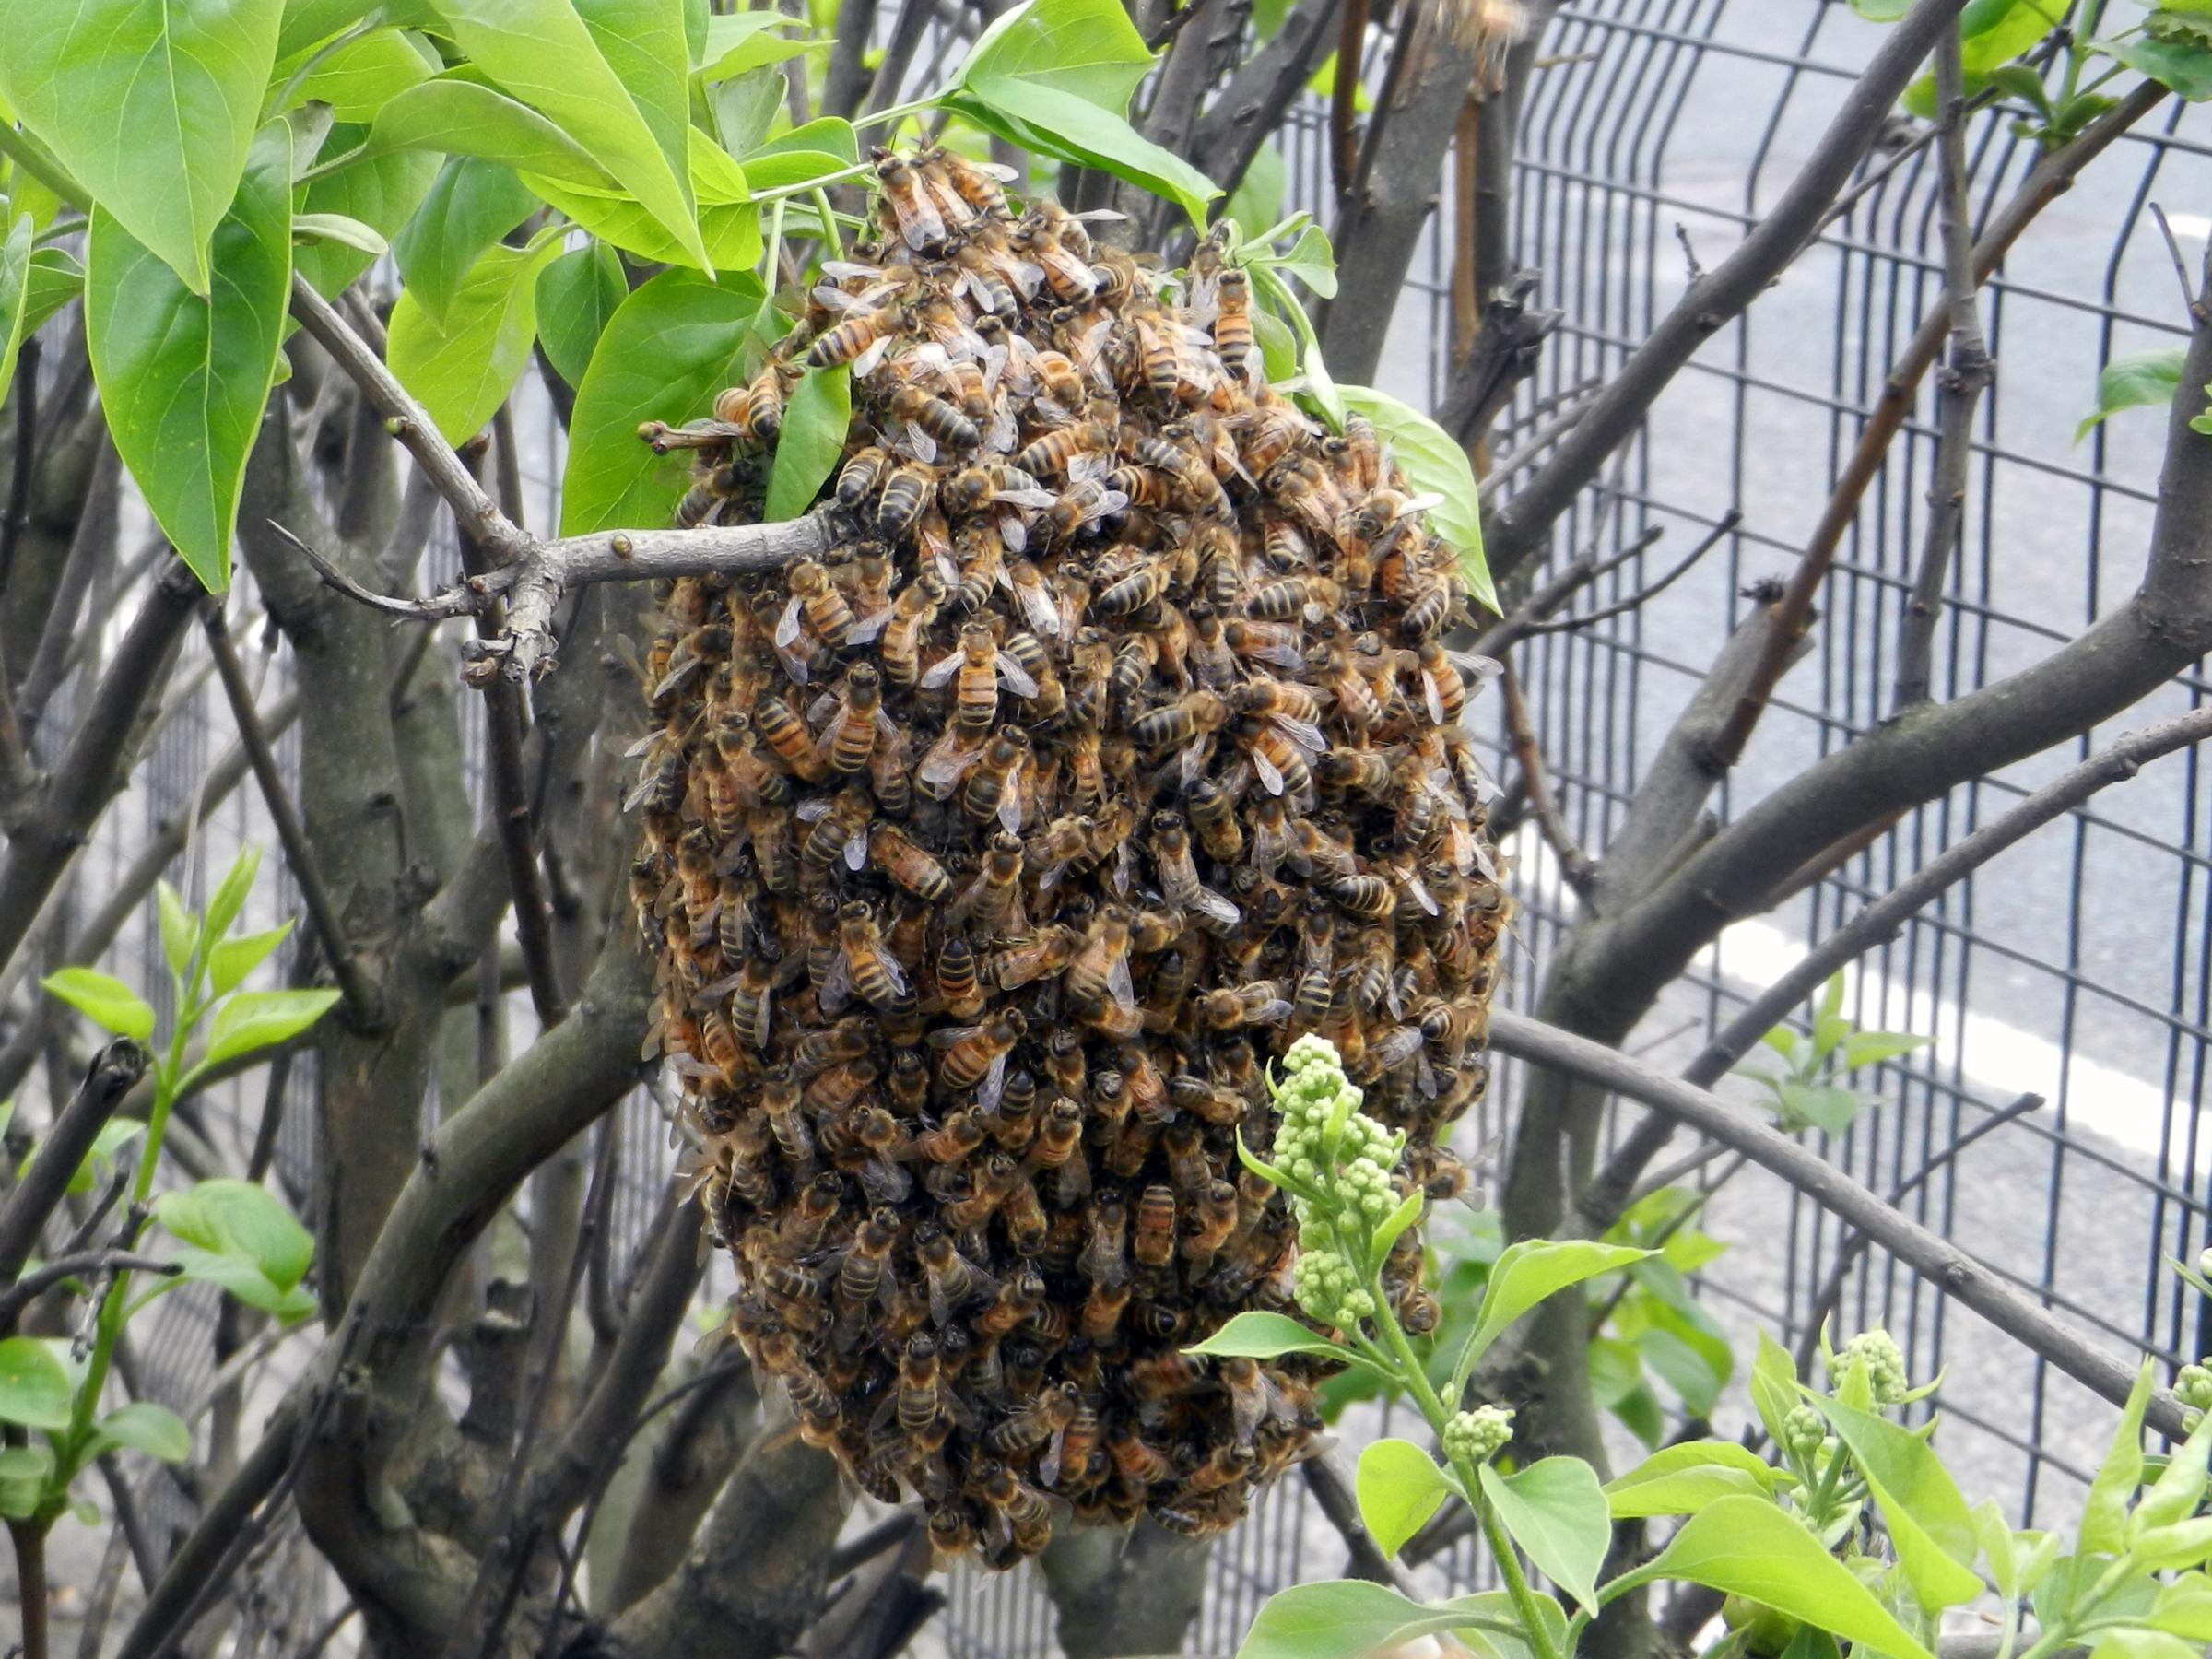 The bees swarming on Victoria Avenue